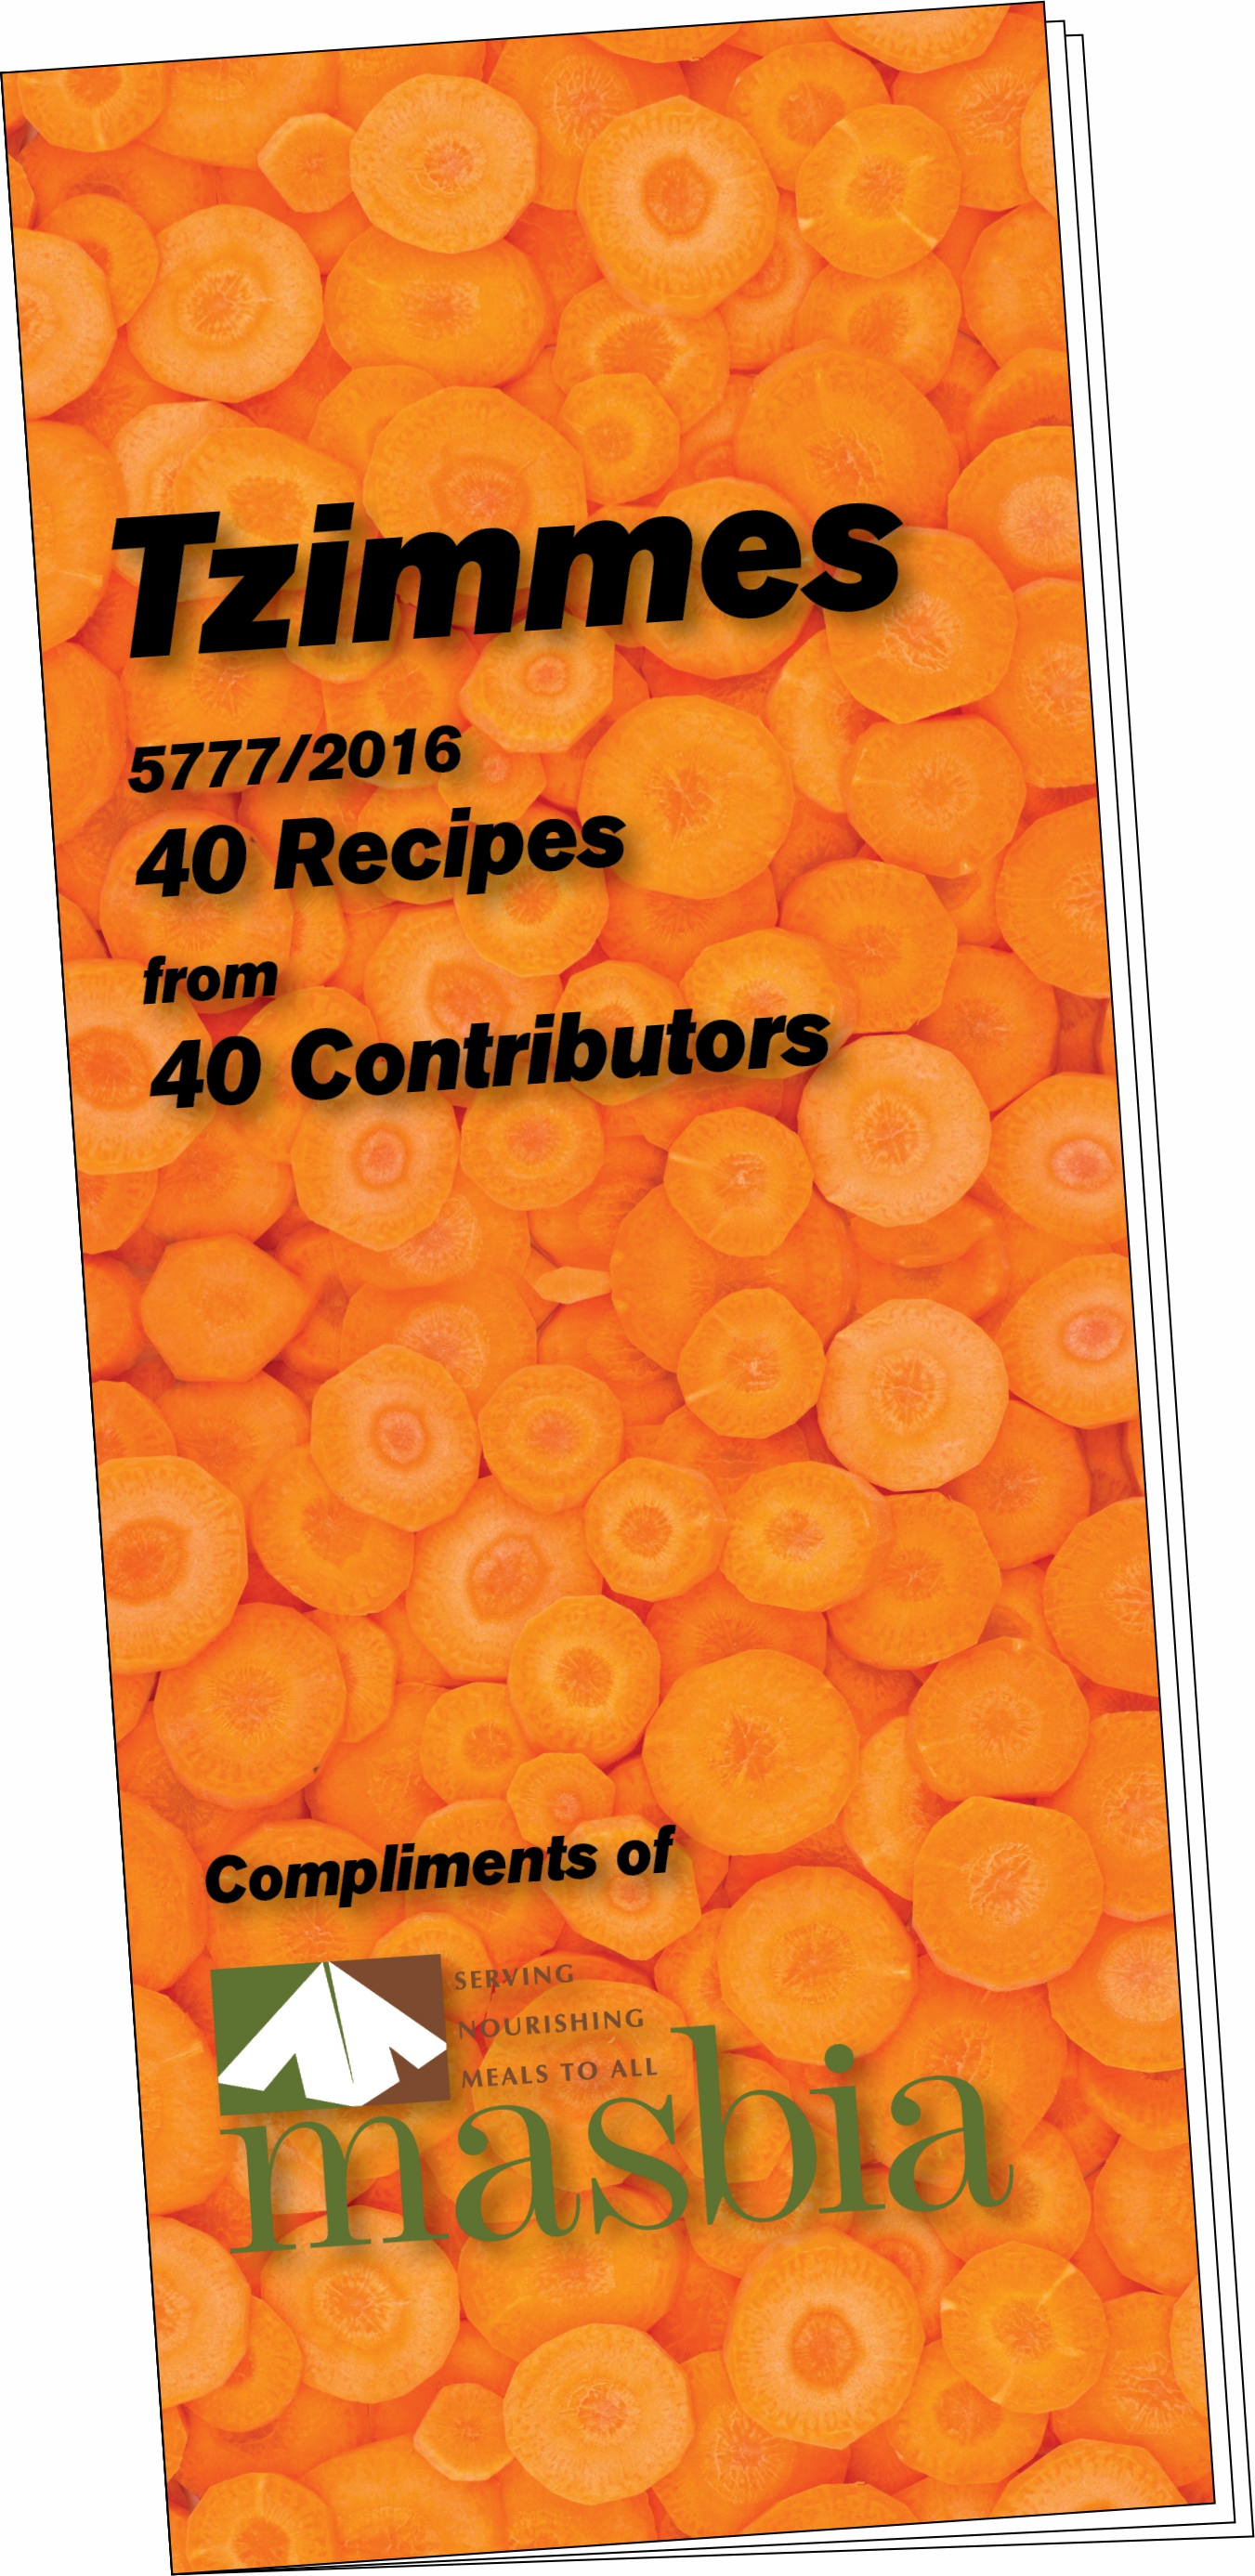 Tzimmes_Recipes_16cover.jpg